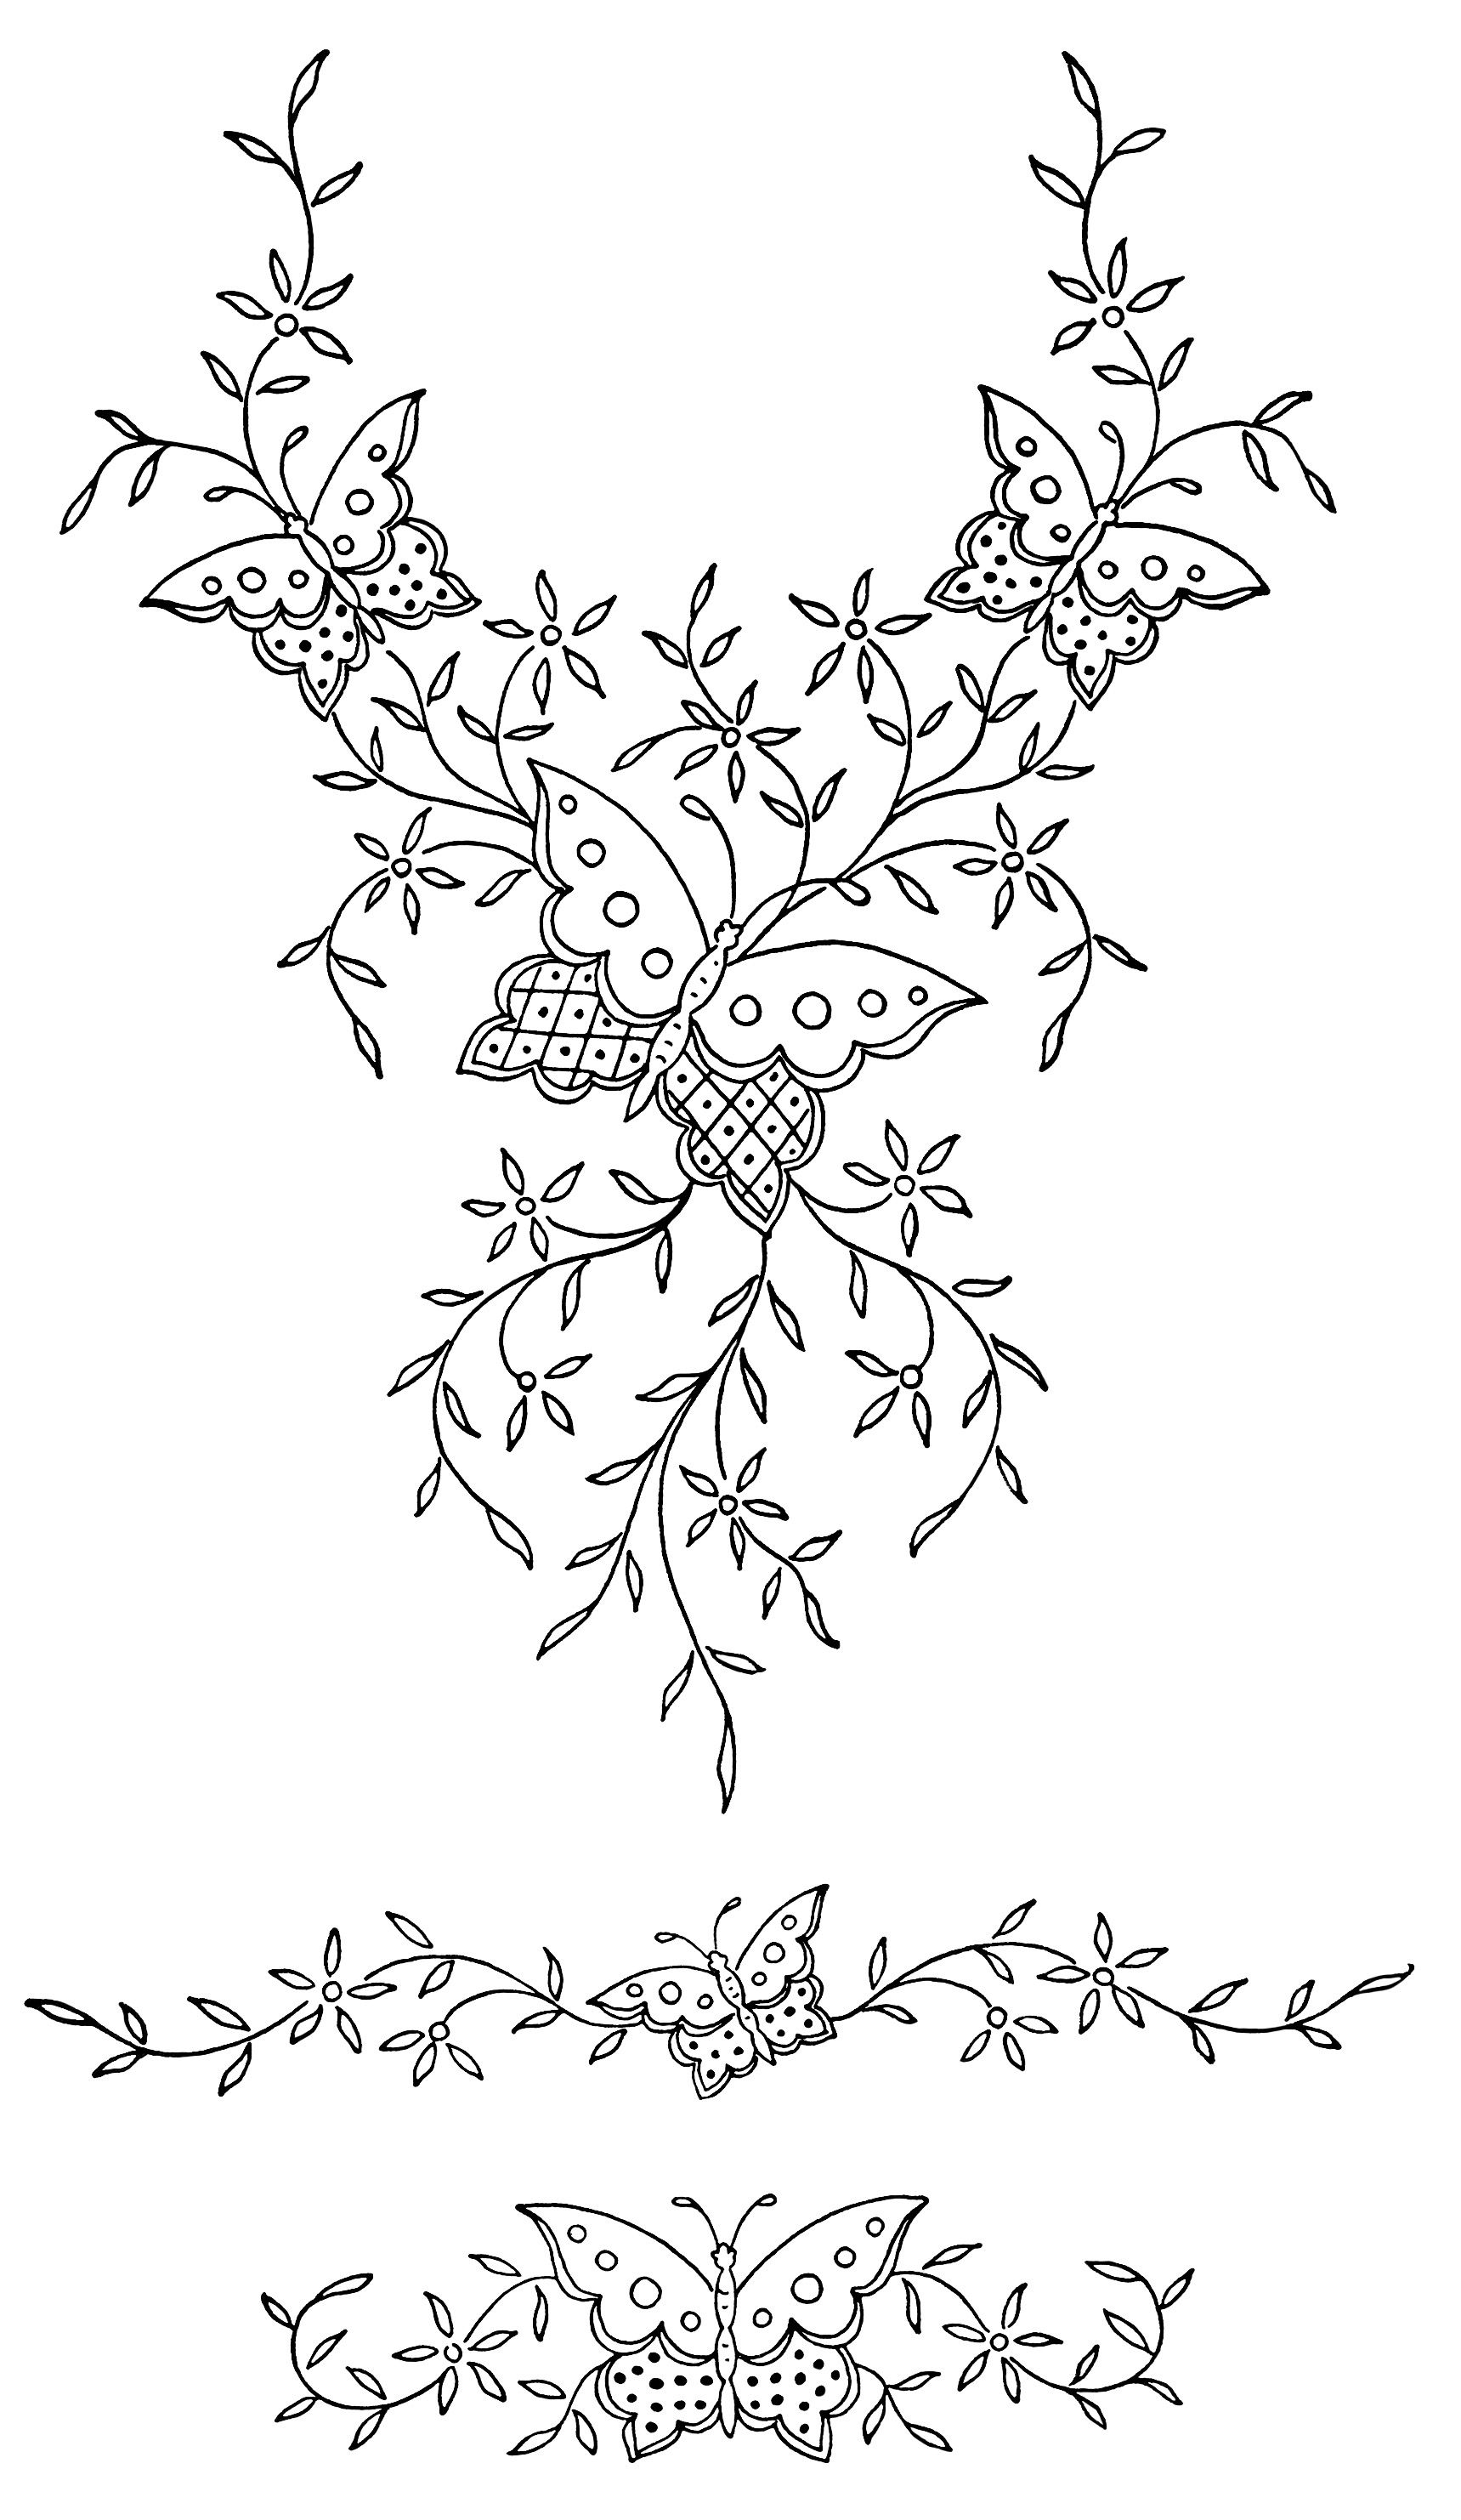 Victorian embroidery pattern, butterfly flower design